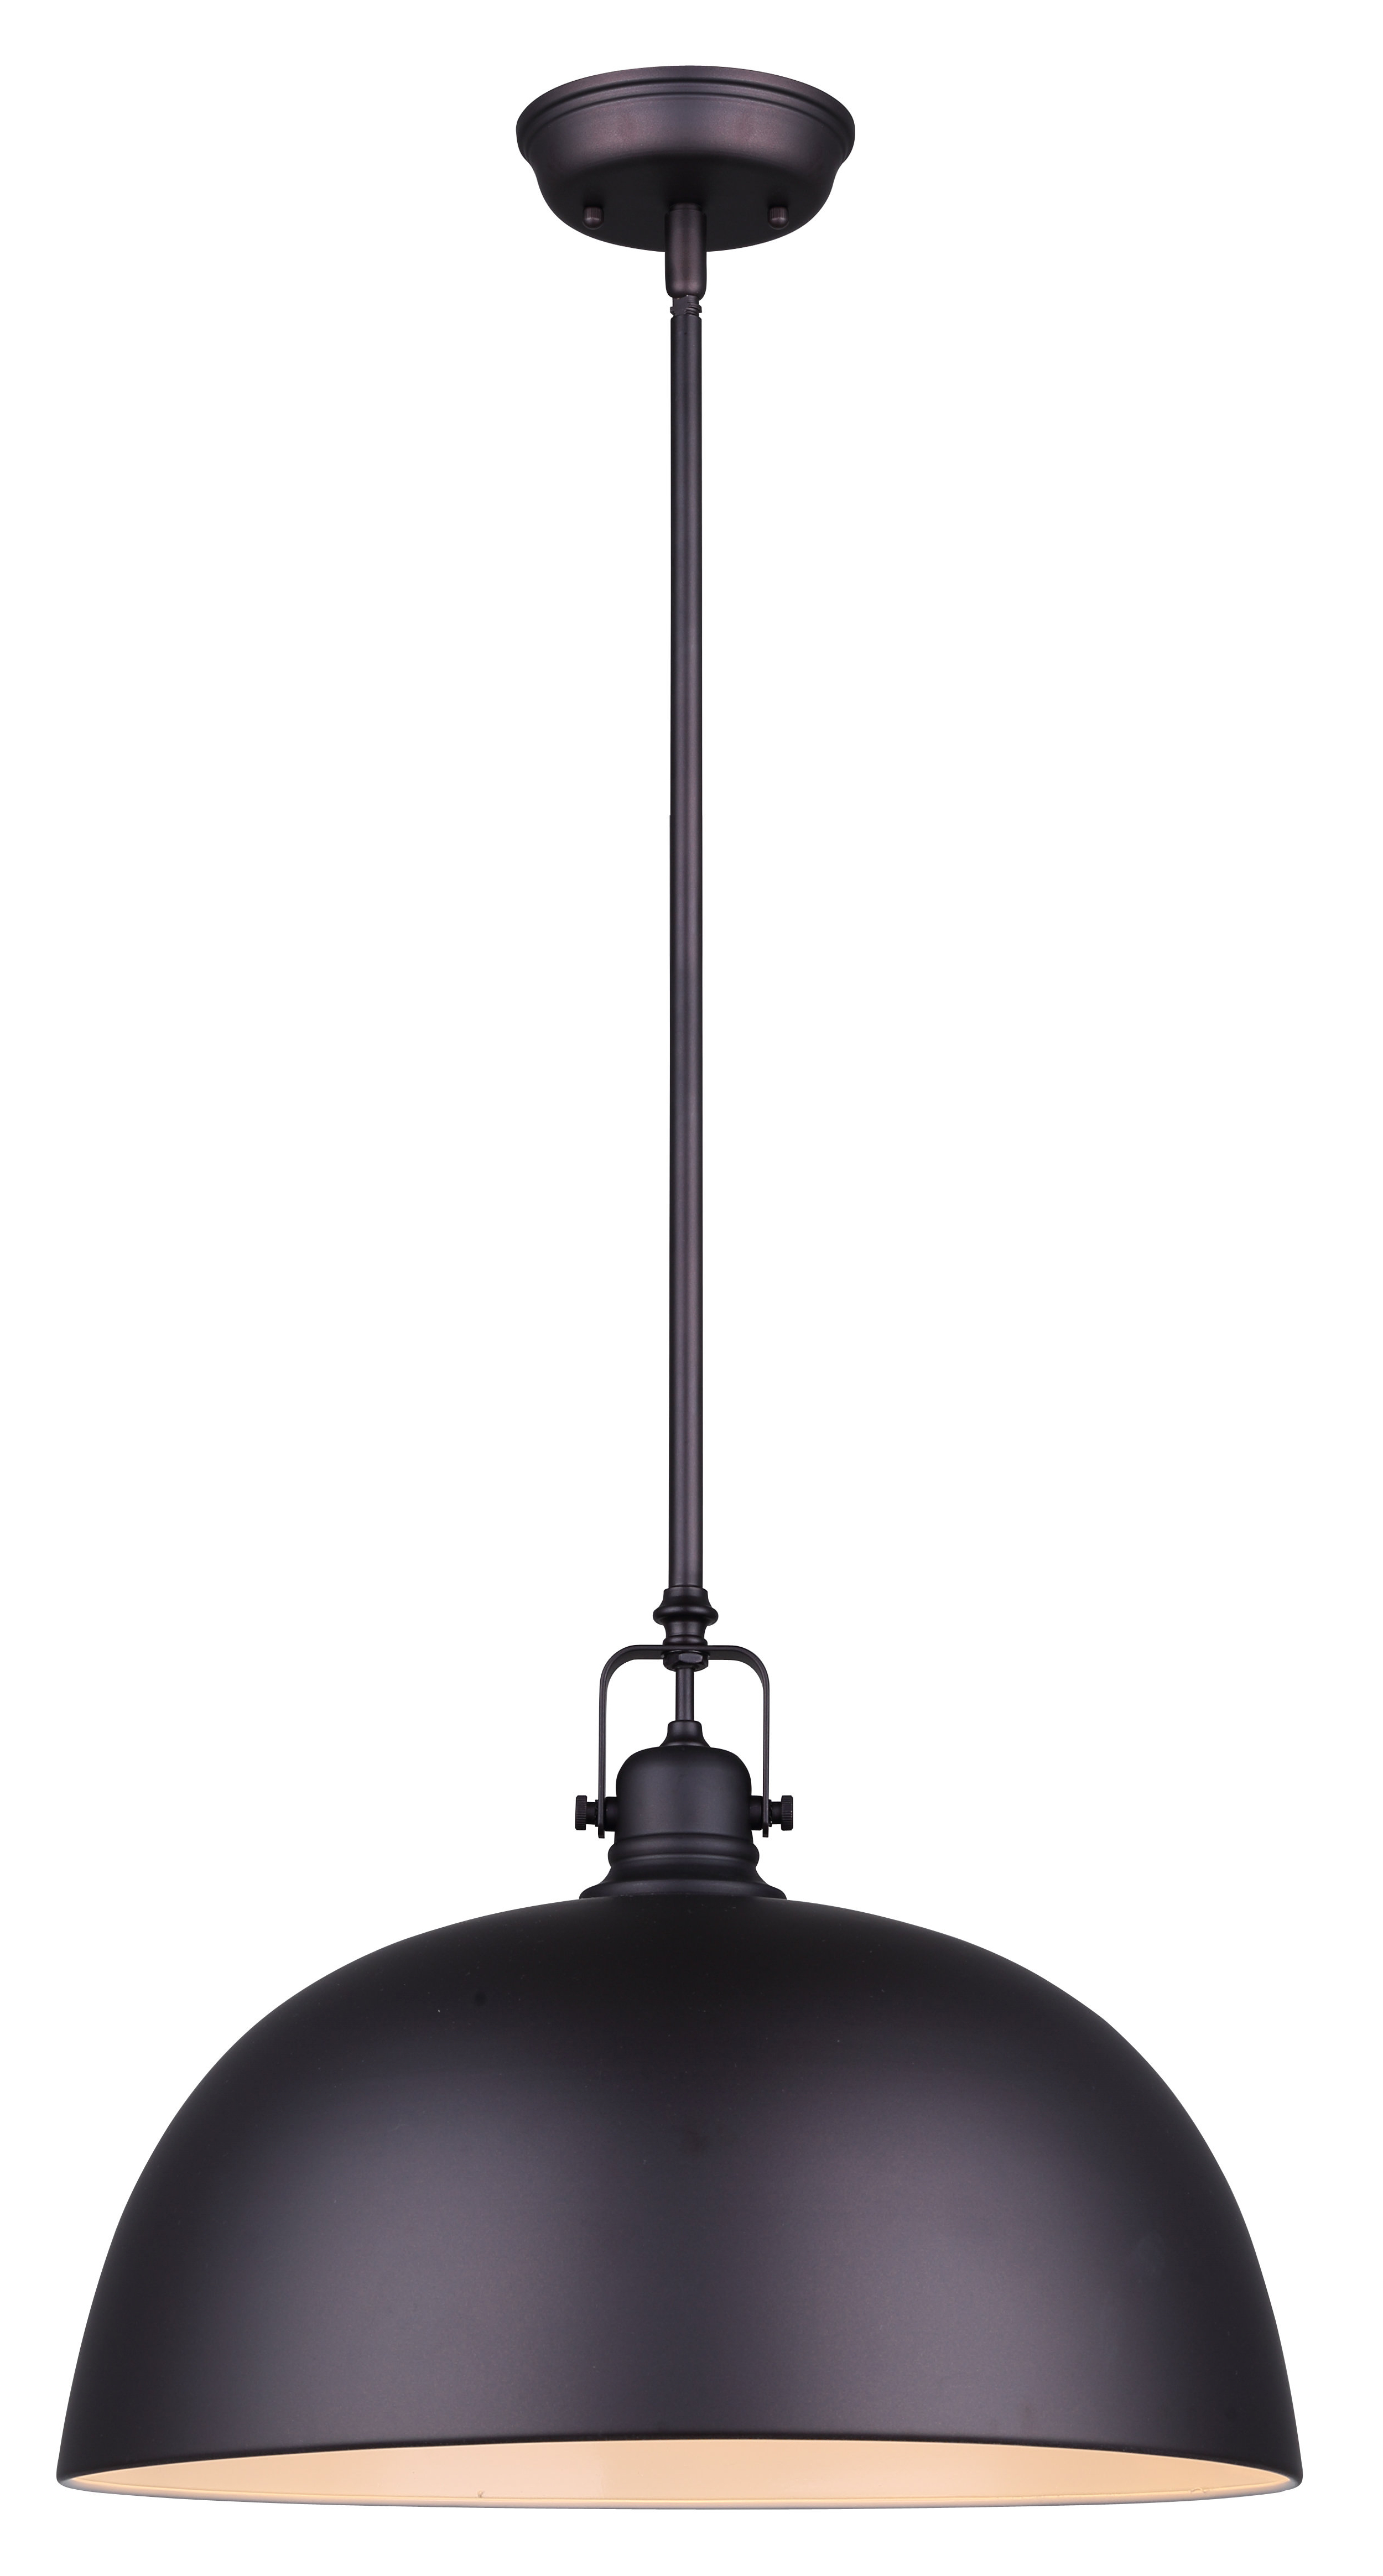 Southlake 1 Light Single Dome Pendant In Well Known Freeda 1 Light Single Dome Pendants (View 4 of 25)